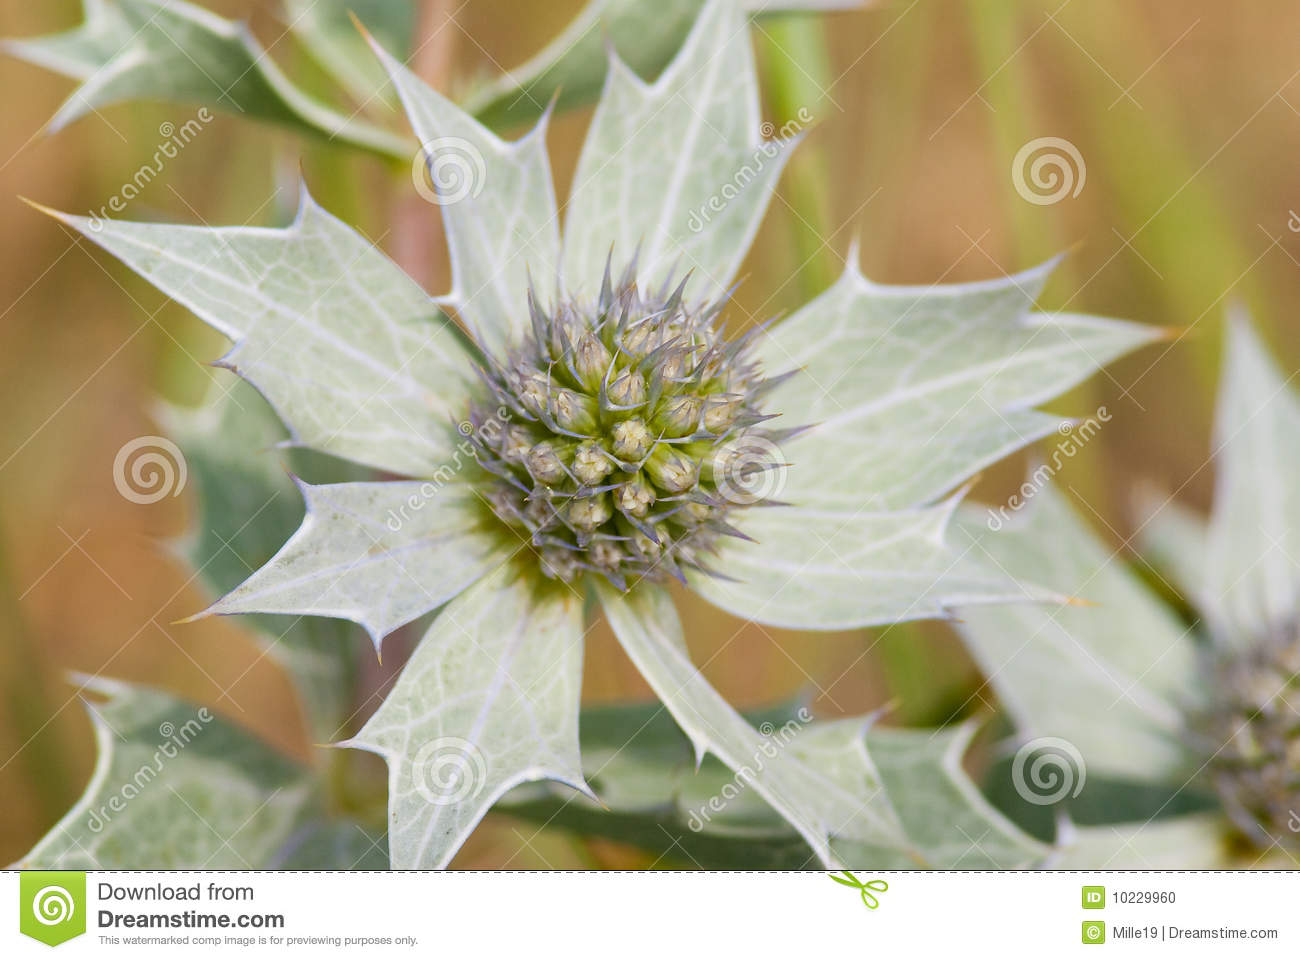 Sea Holly Flower Stock Image